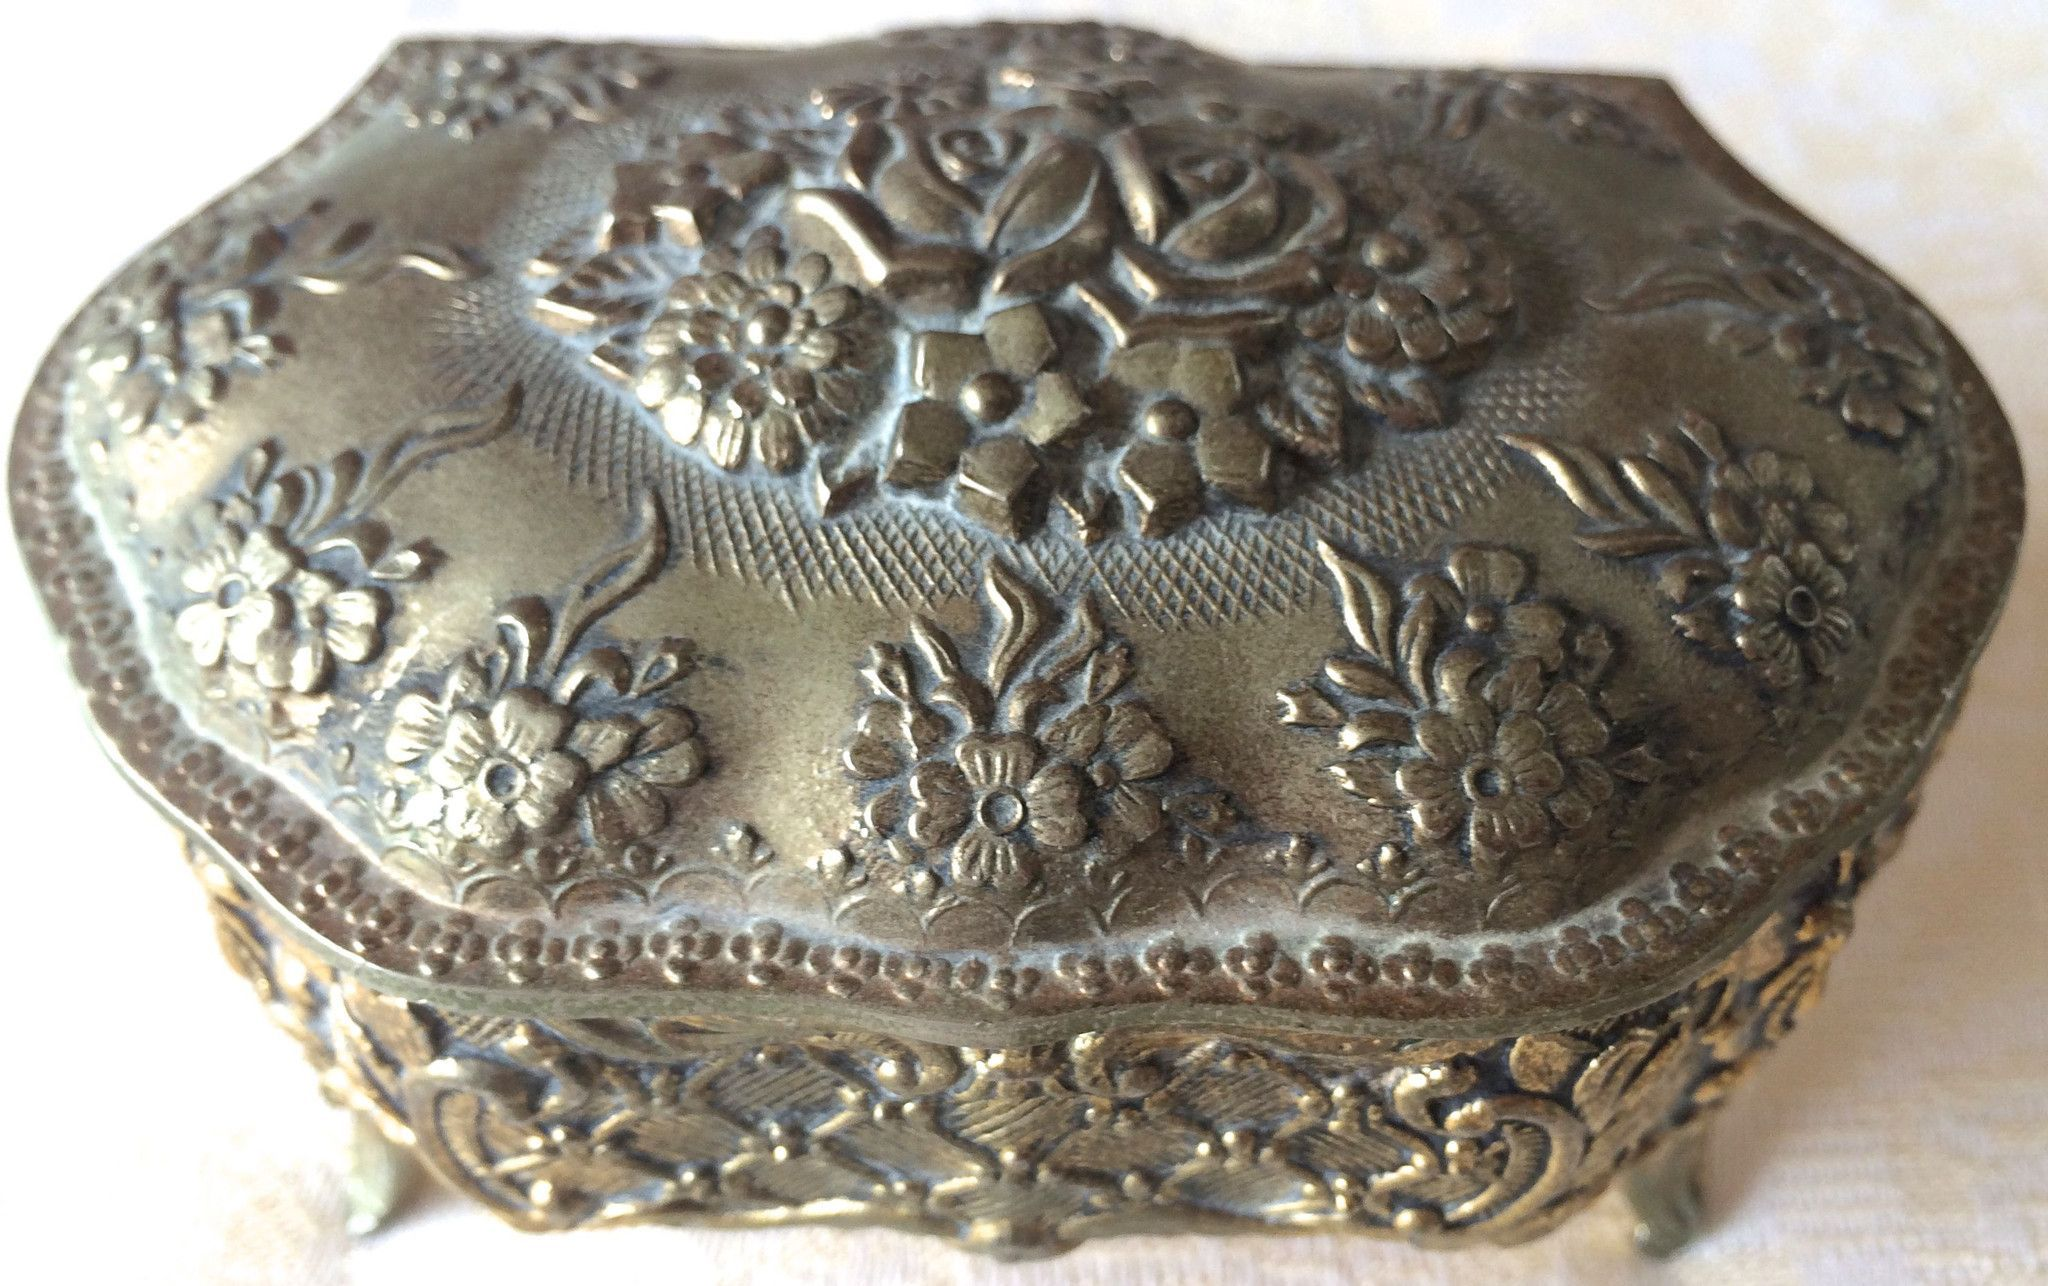 Vintage Silver-Plated Embossed Footed Jewelry /Trinket Box (8149), Made in Japan